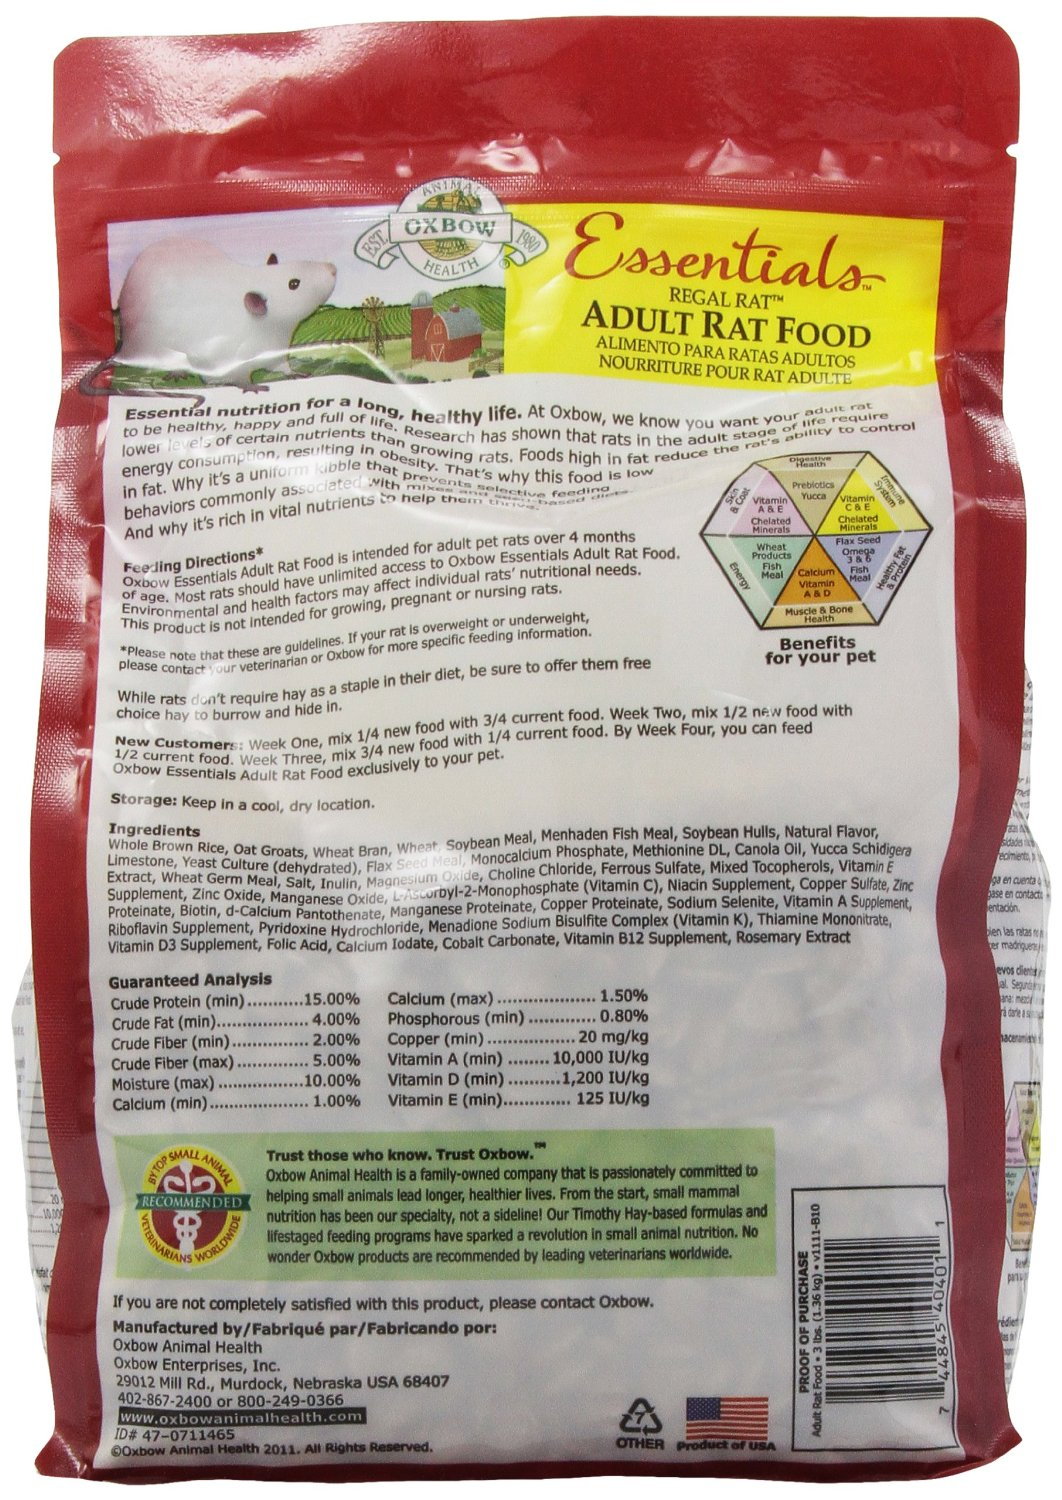 Details about Oxbow REGAL RAT Adult Food Essential Fortified Nutrient  Low-Fat Kibble 3 Pound